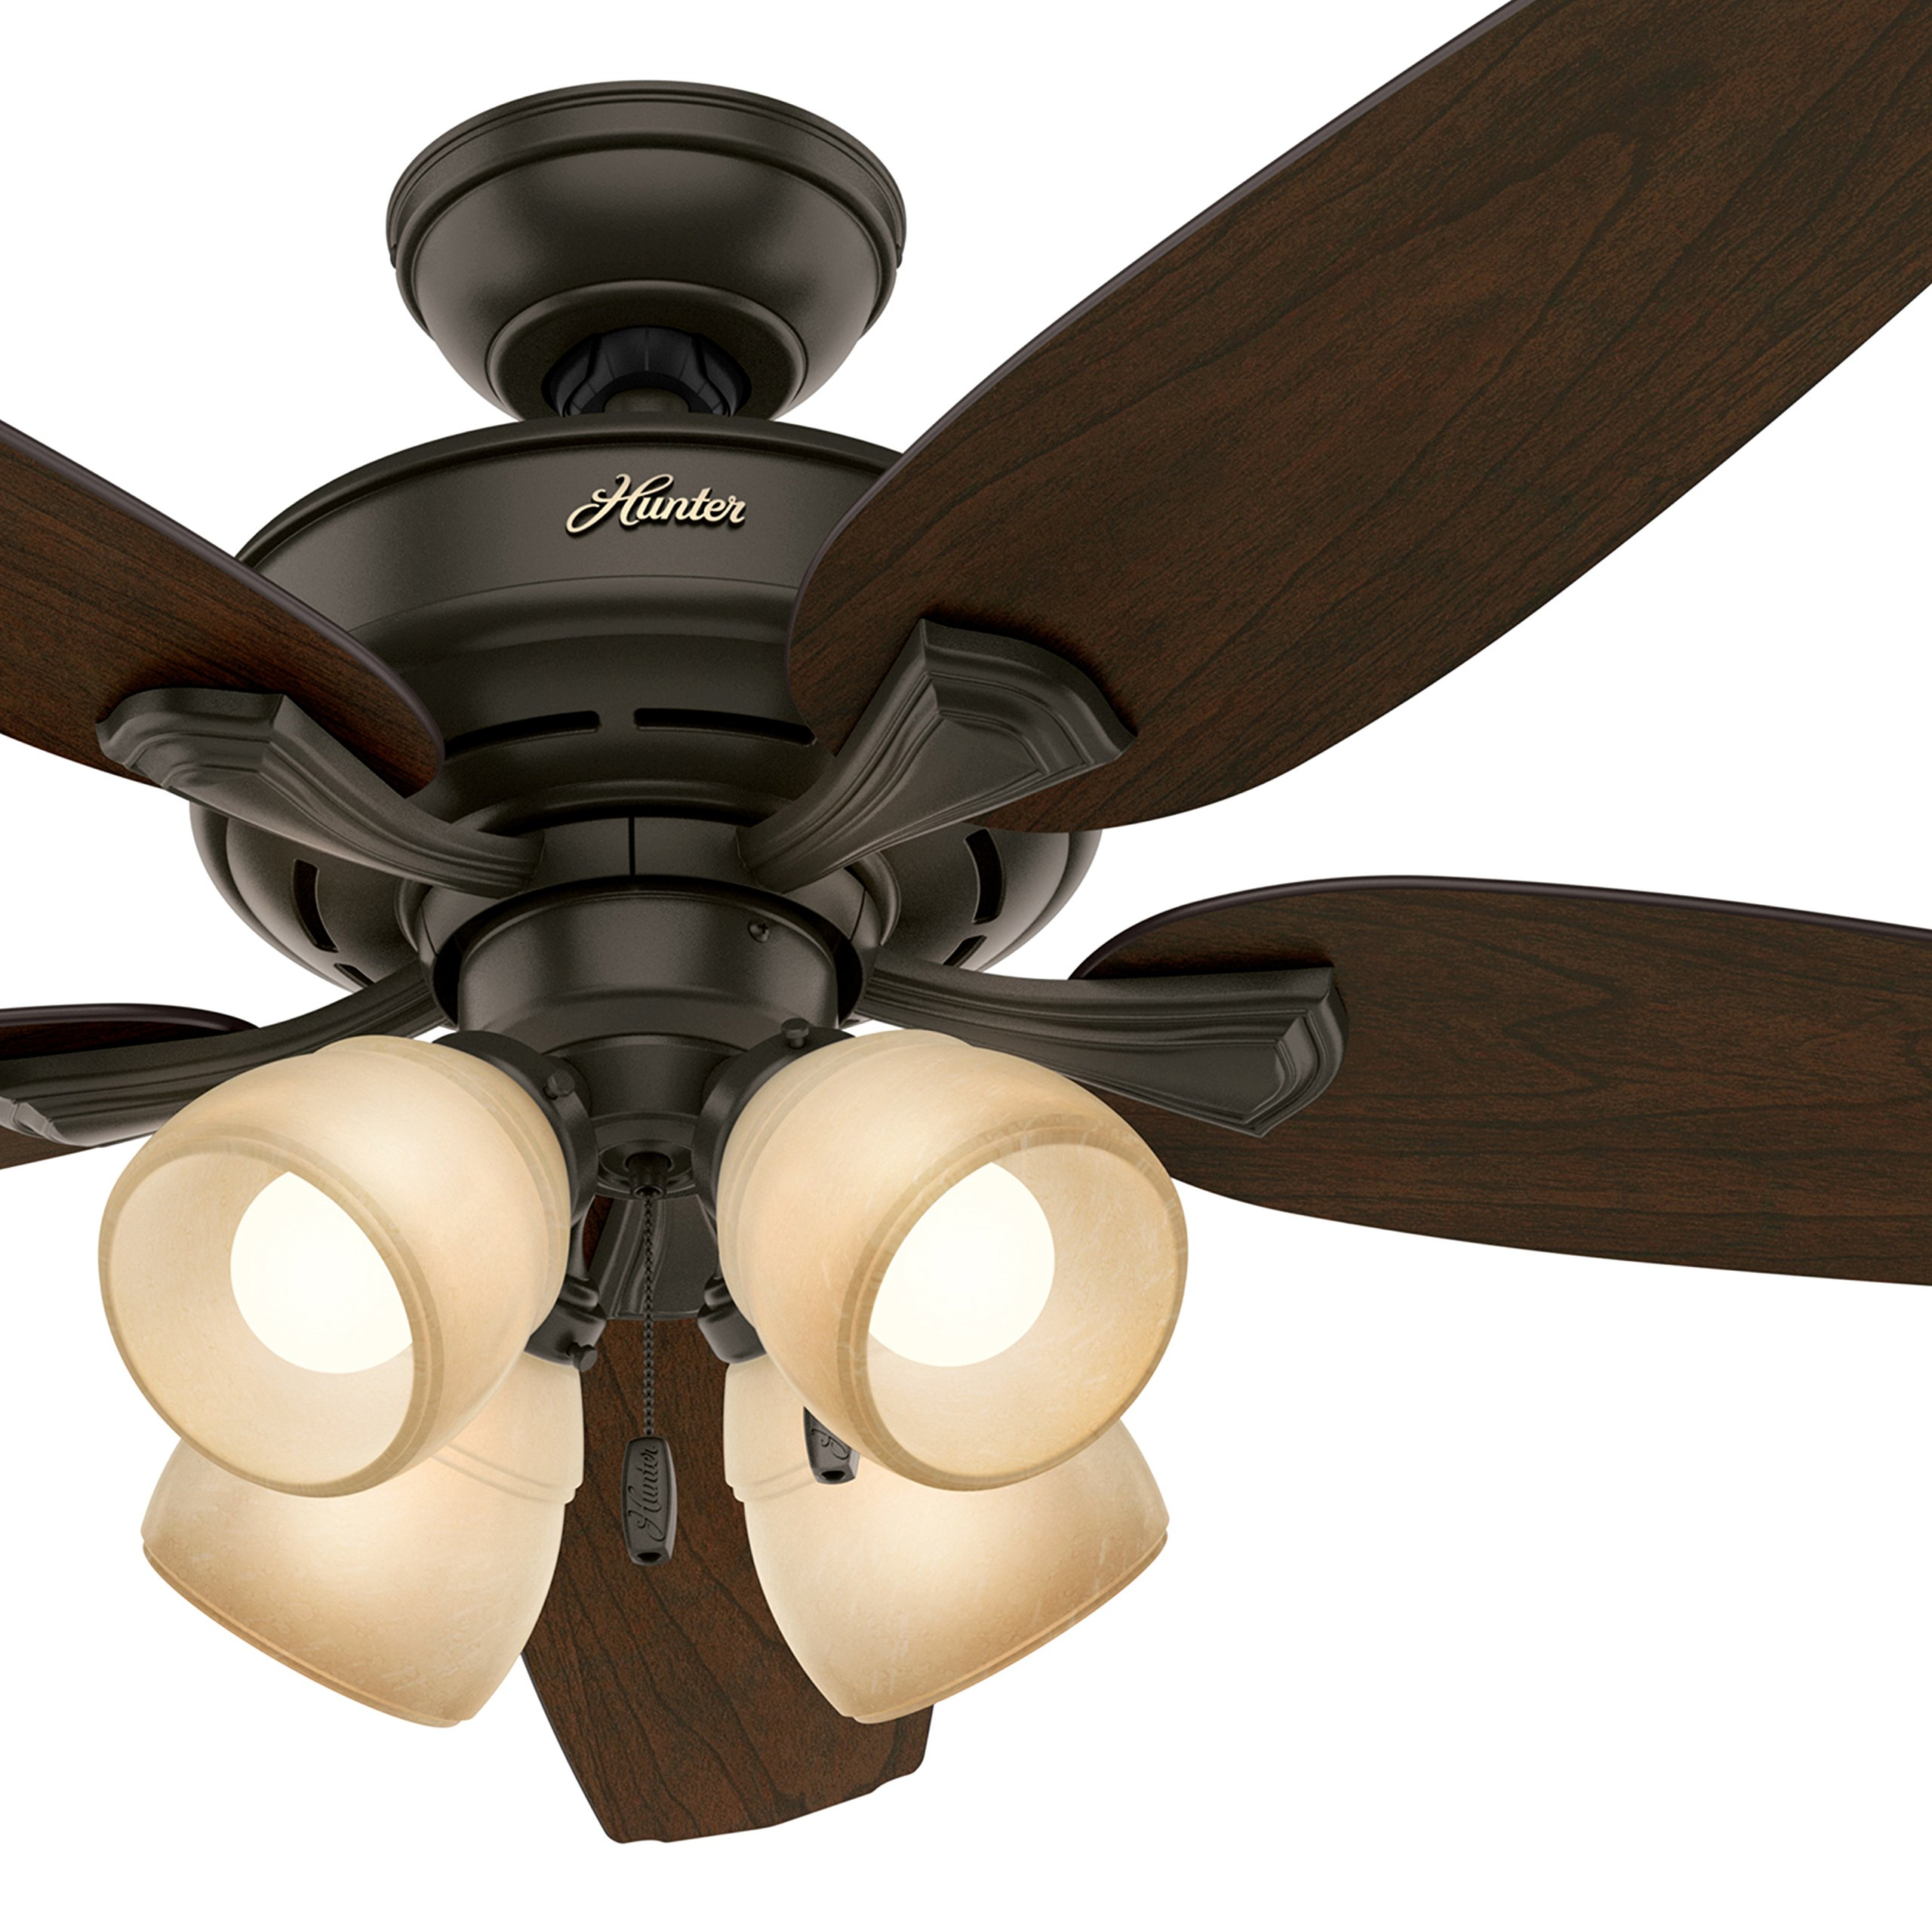 Hunter Fan 52'' LED Ceiling Fan with 4 Lights in a New Bronze Finish (Certified Refurbished)